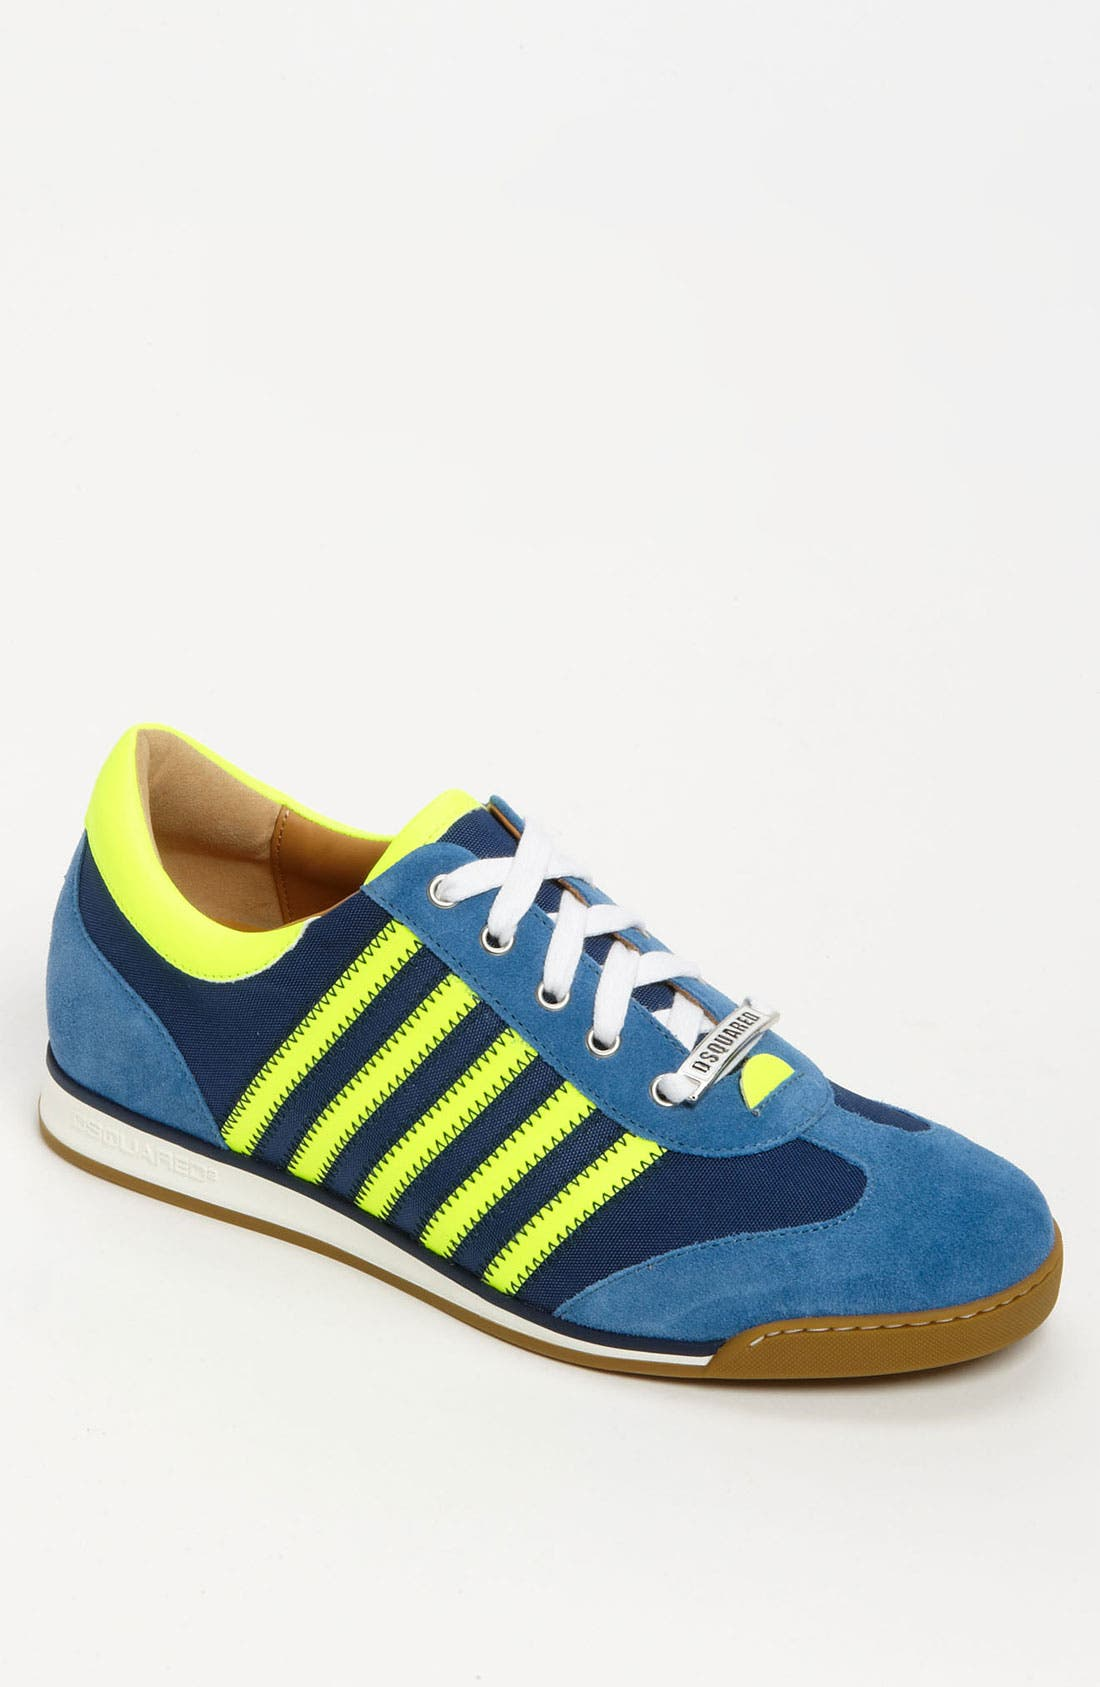 Main Image - Dsquared2 '419T' Sneaker